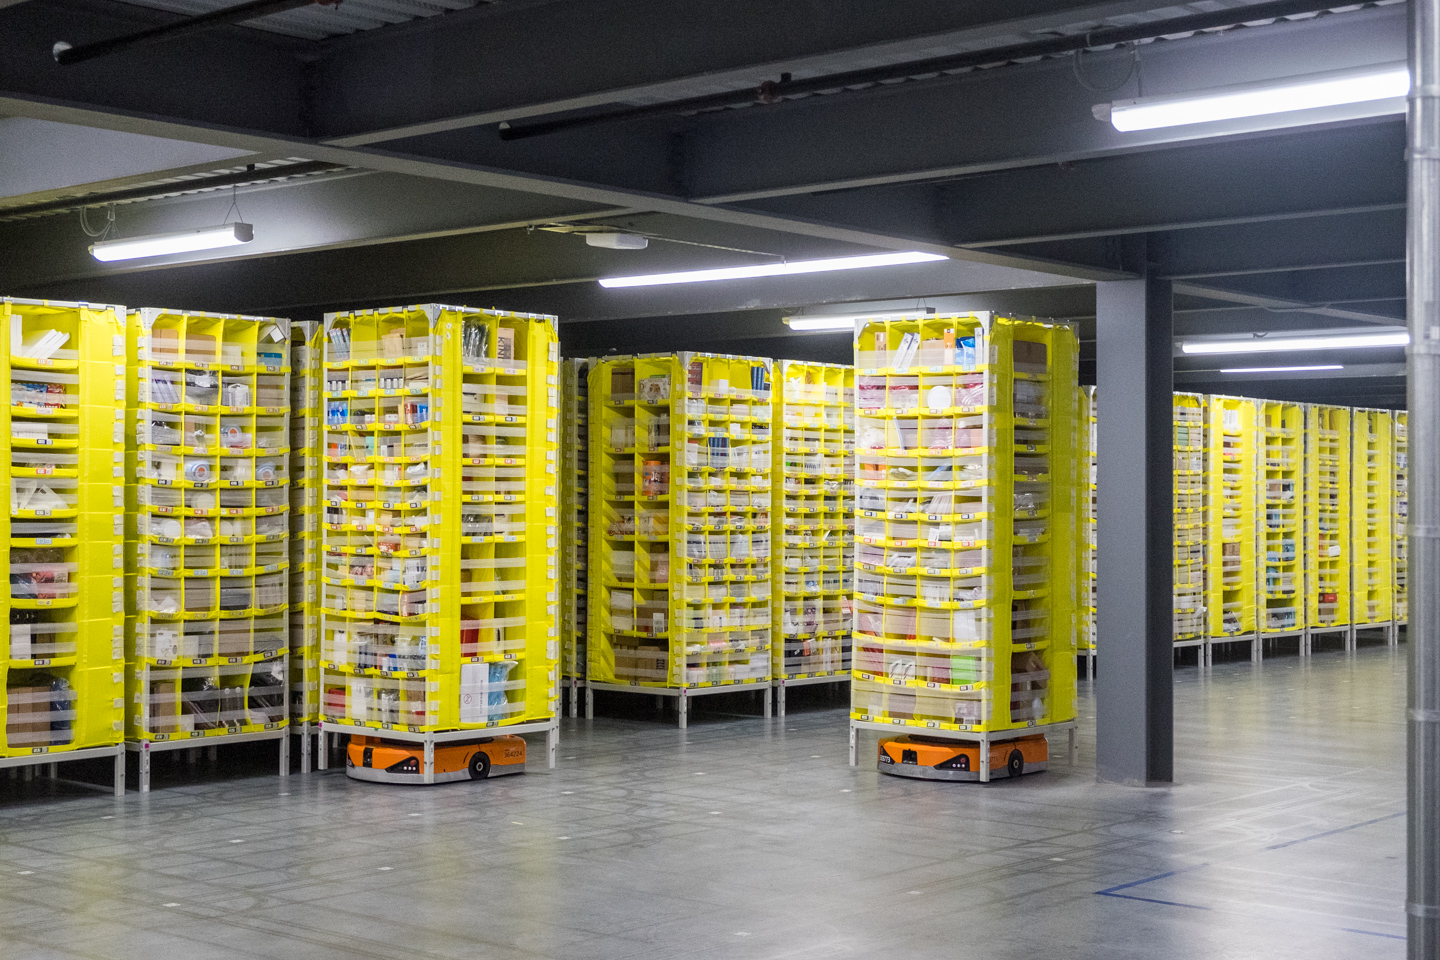 Oregon Business - PHOTOS: Amazon Robotics Fulfillment Center